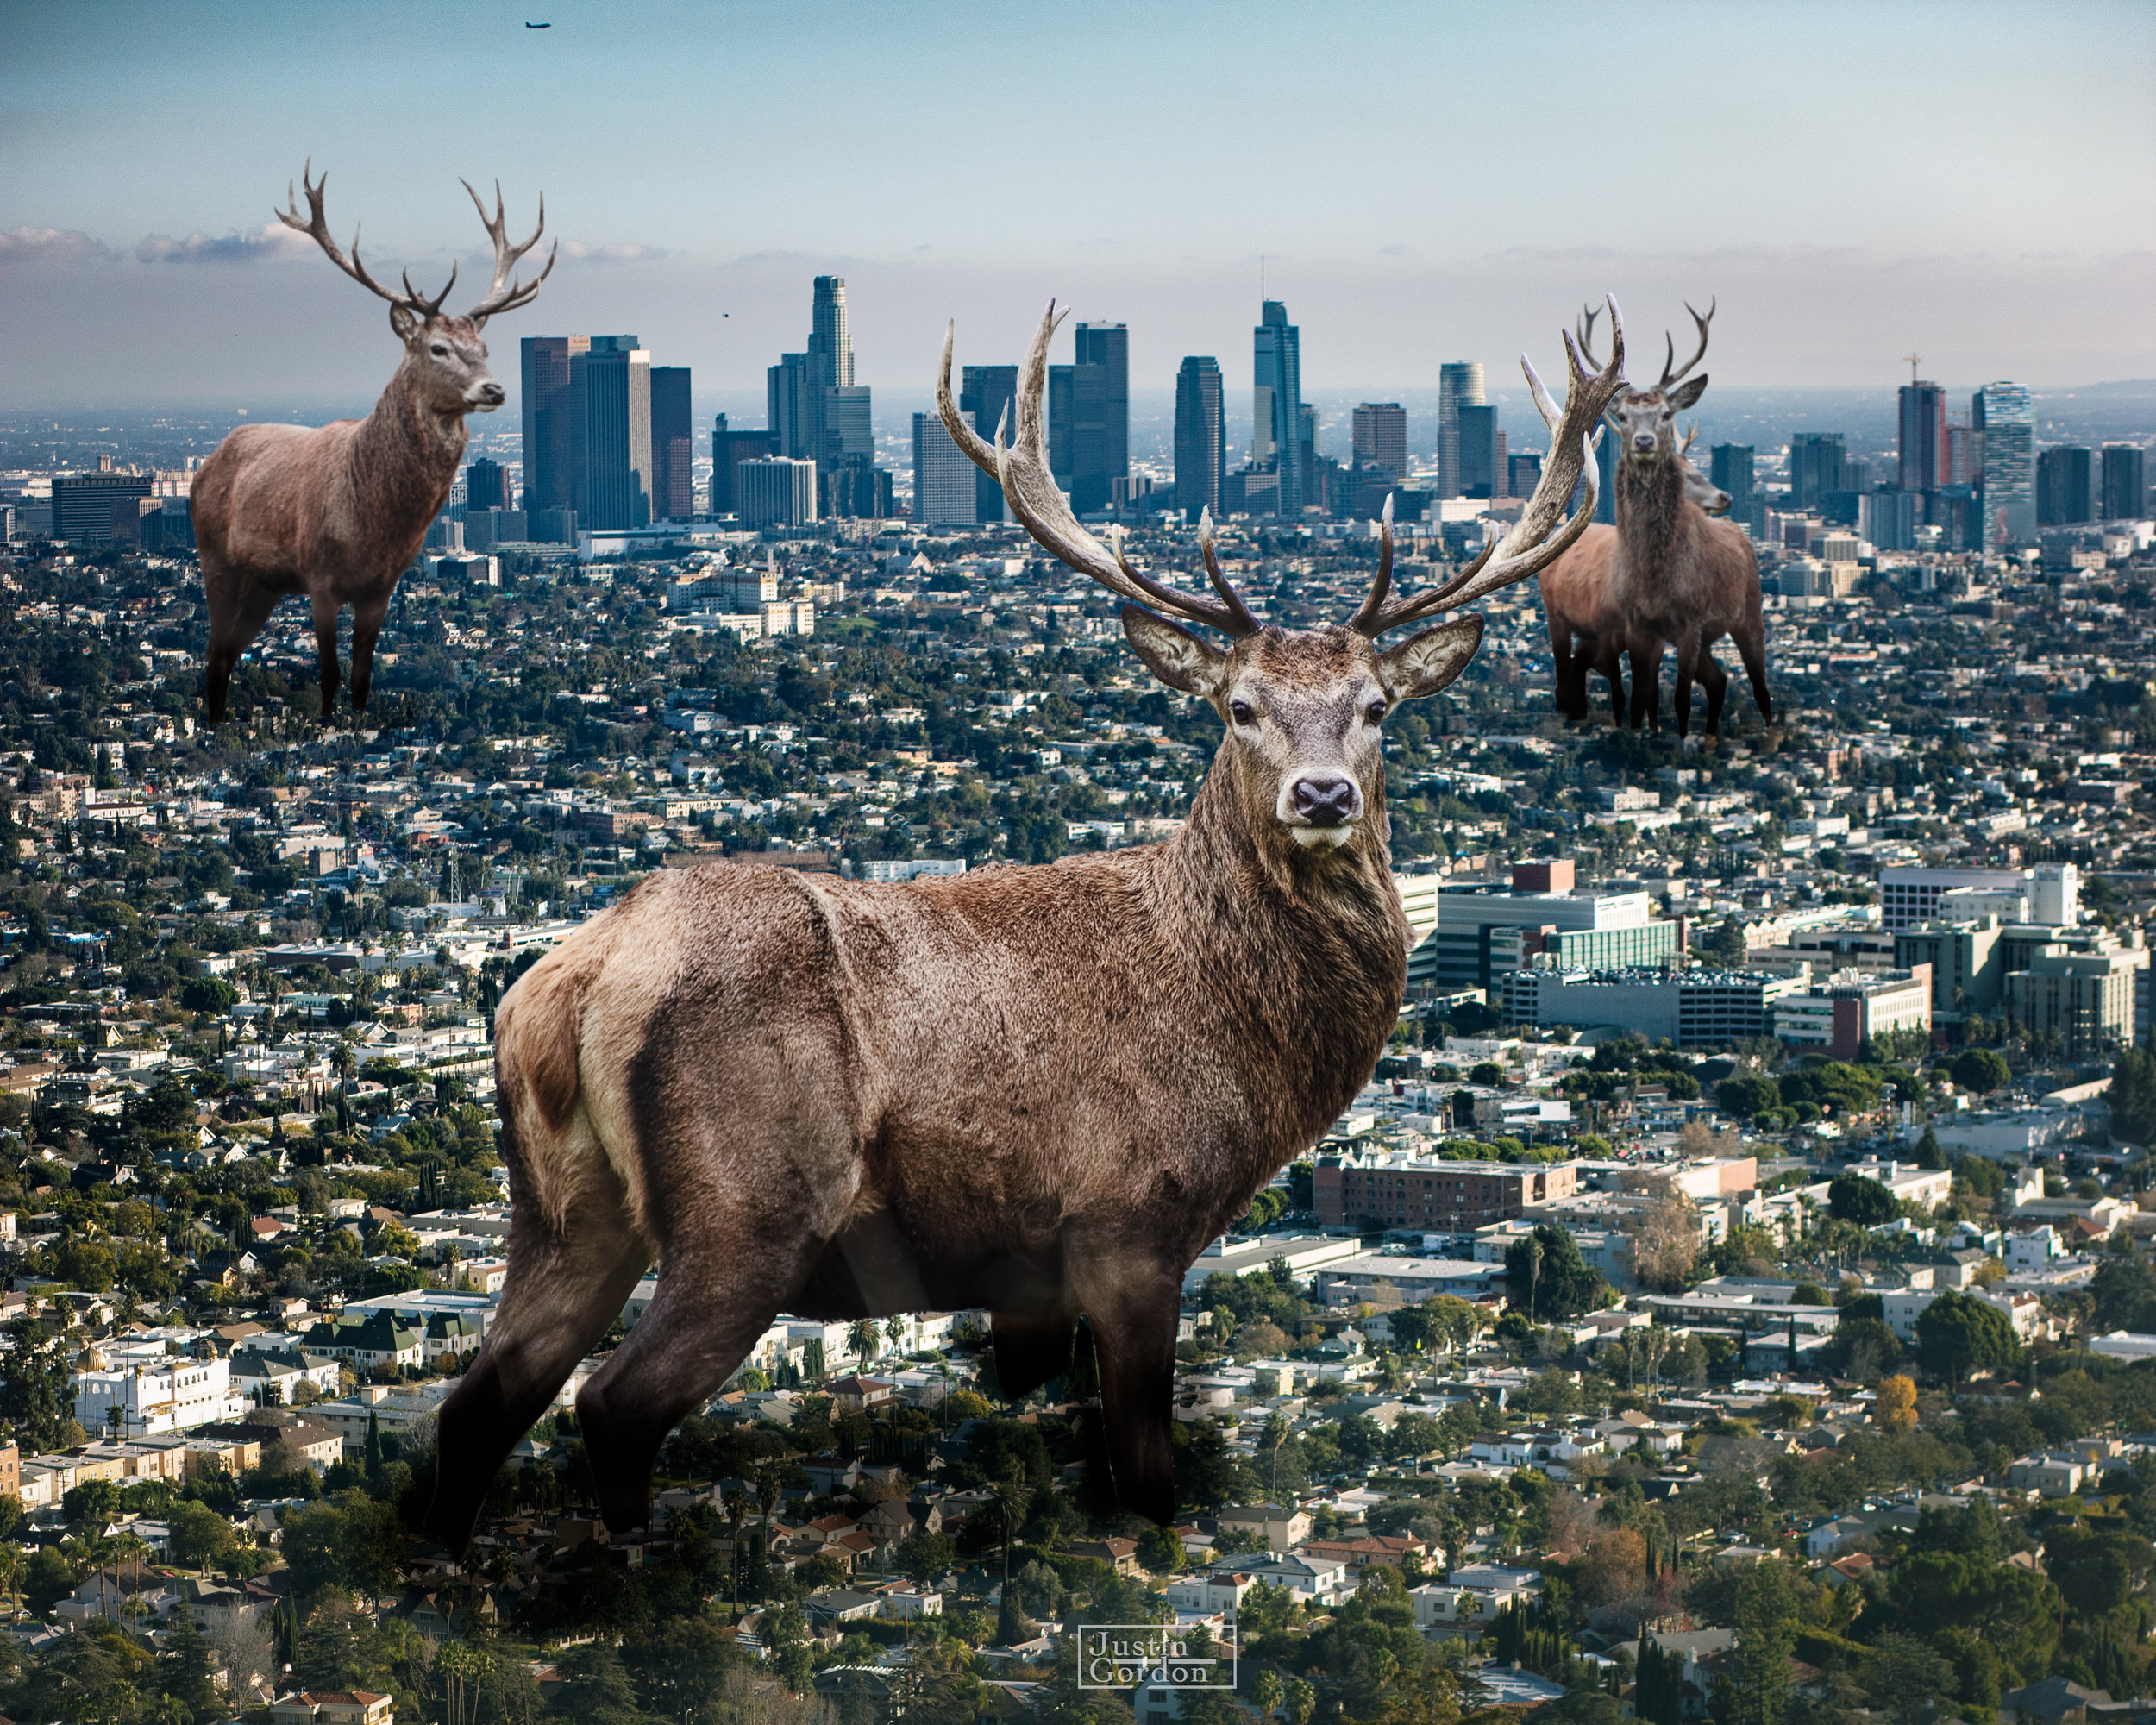 Los Angeles invasion—a monument to the Milwaukee Bucks. (Picture by Justin Gordon)